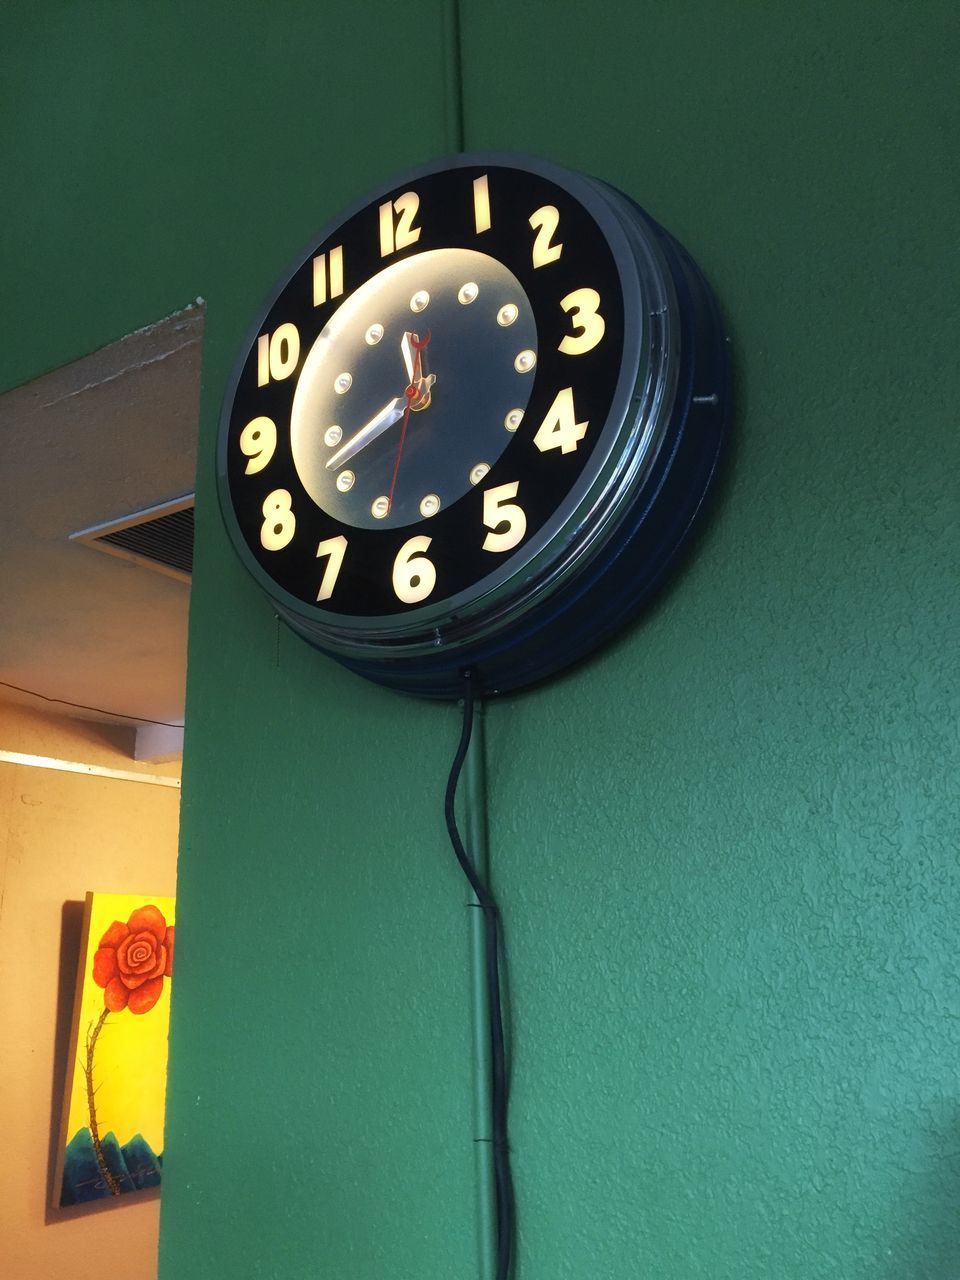 indoors, time, no people, communication, clock, close-up, day